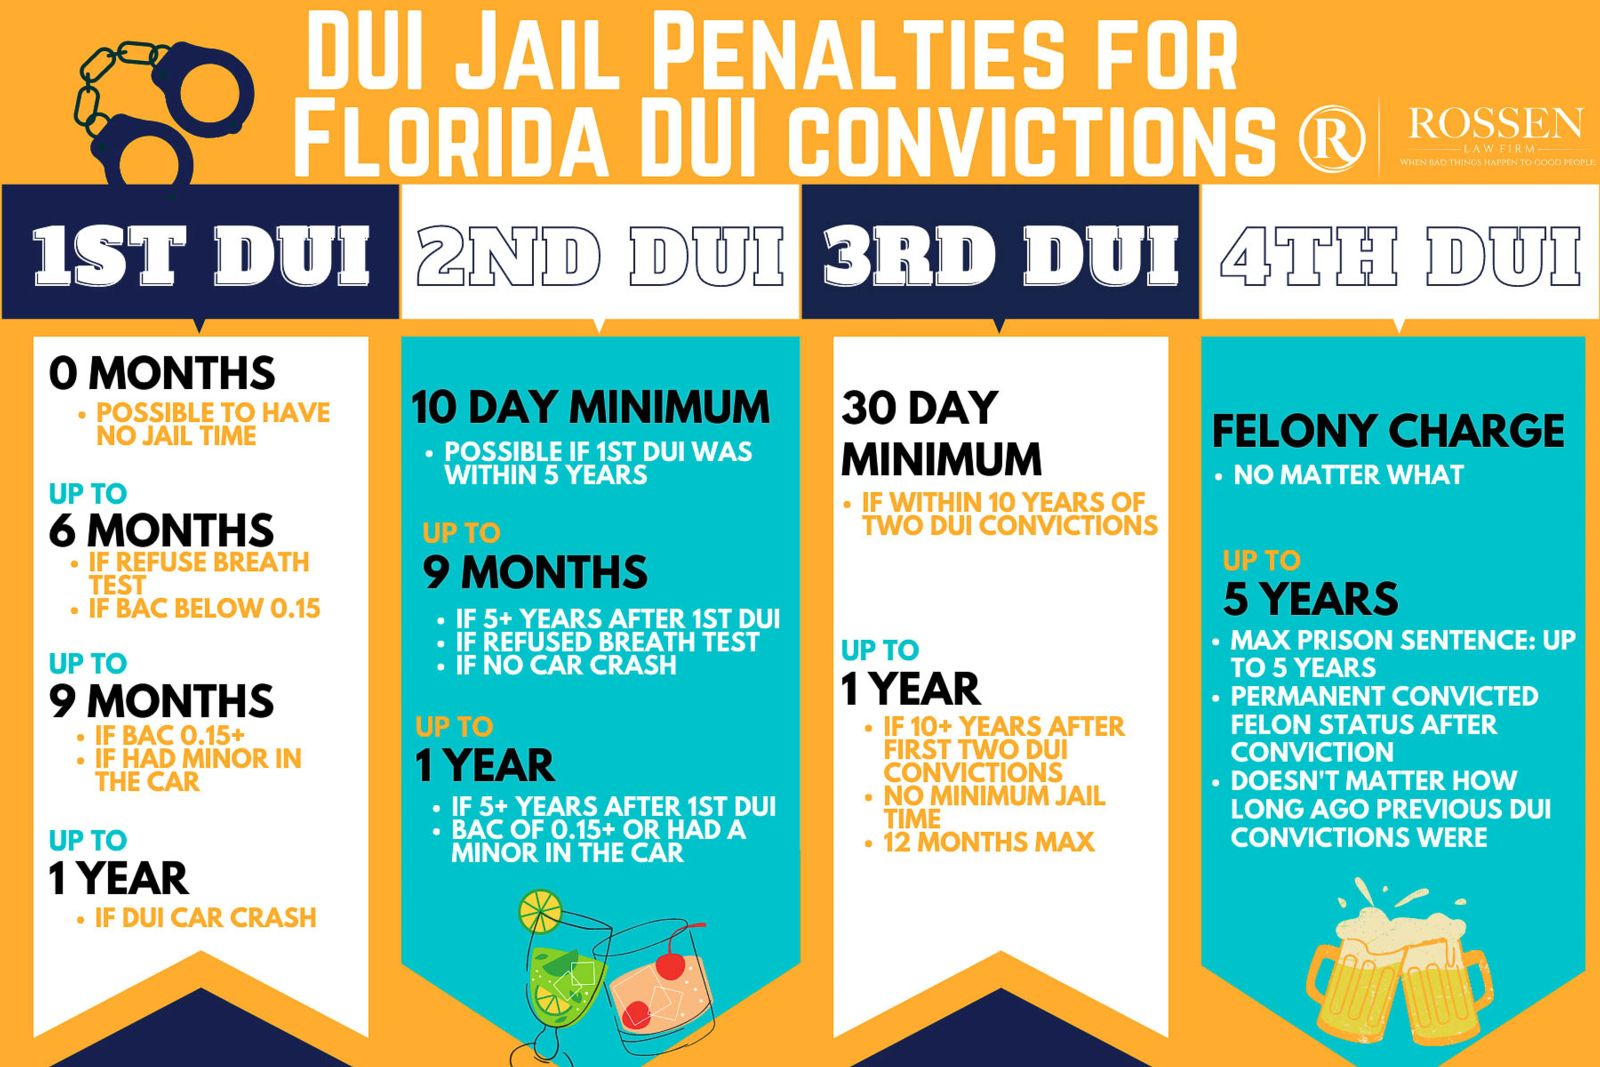 Dui Conviction Penalties In Florida As Told By Dui Attorney Rossen Law Firm